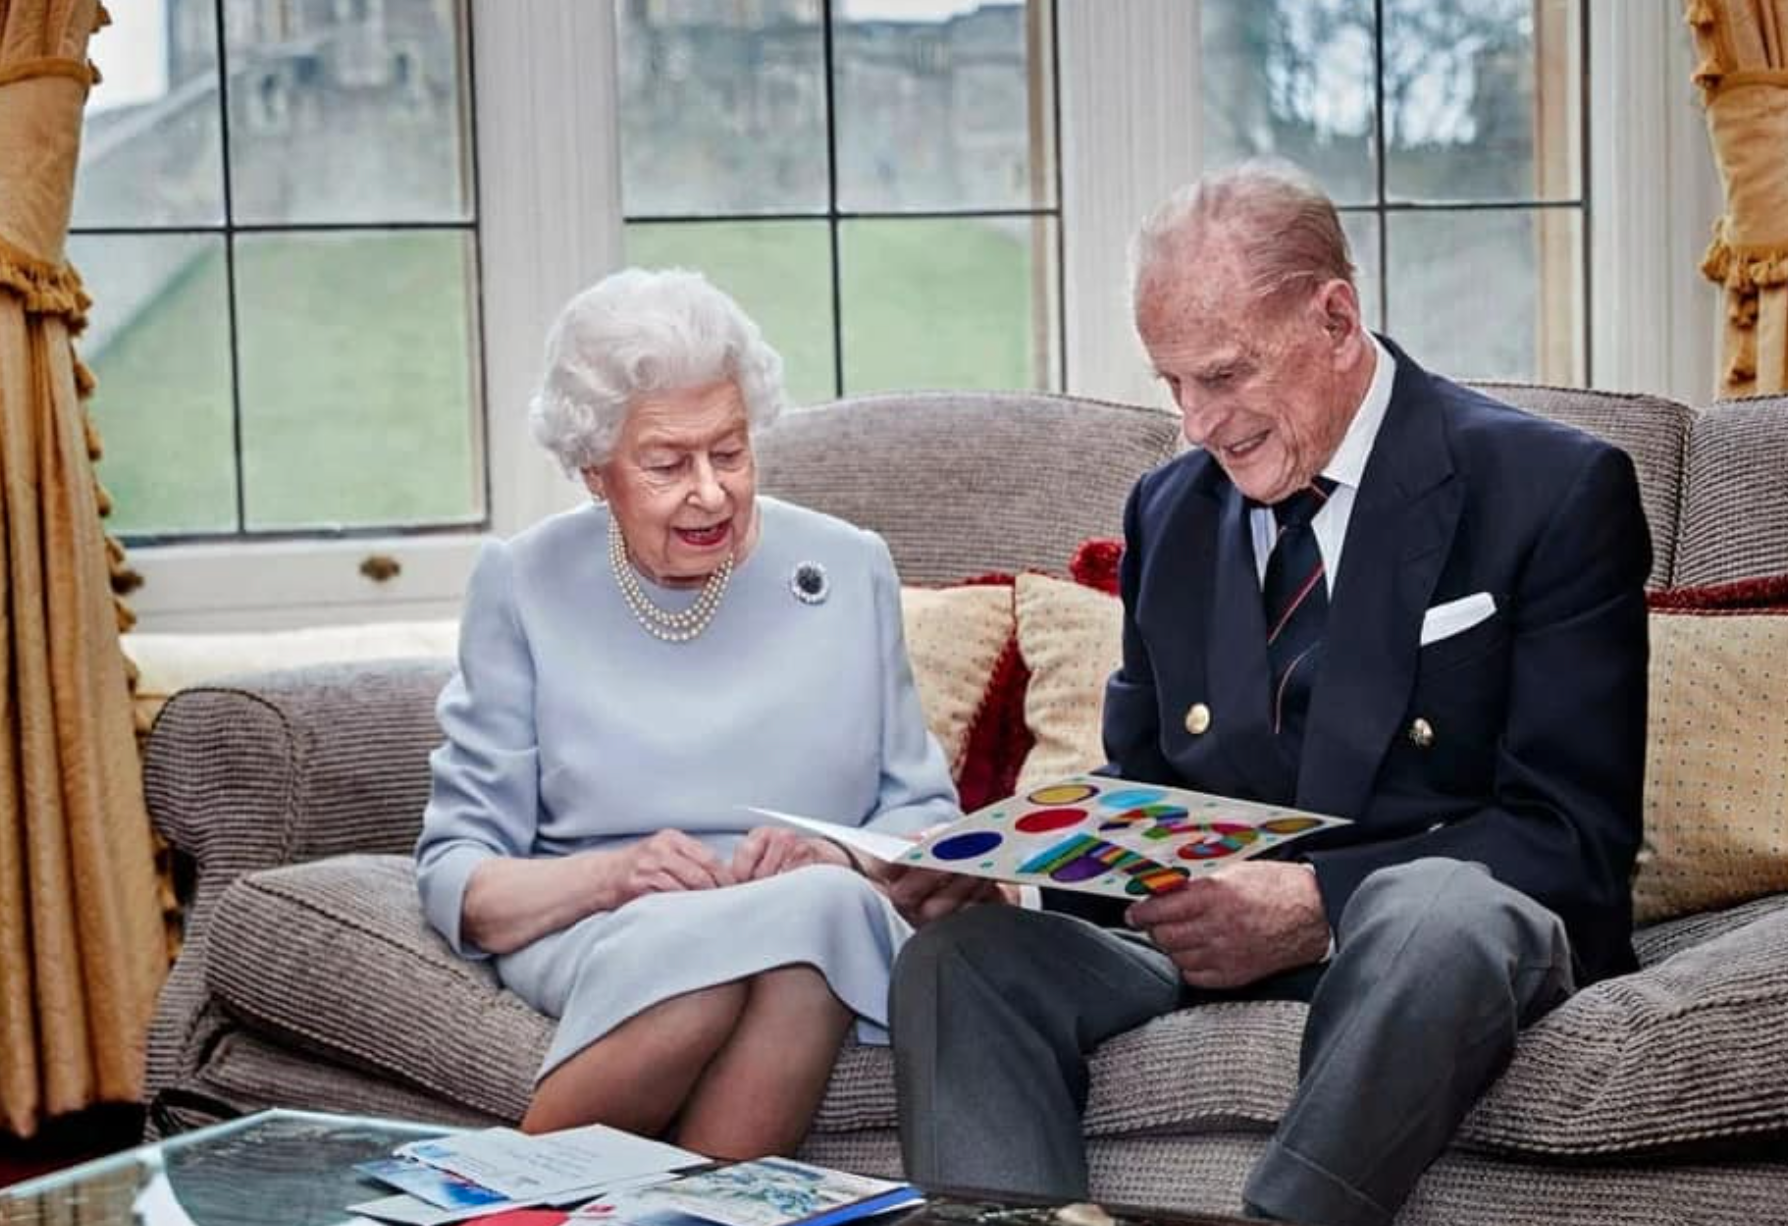 Above: The Queen and Prince Philip showing their delight at the anniversary card that had been made by three of their grandchildren.